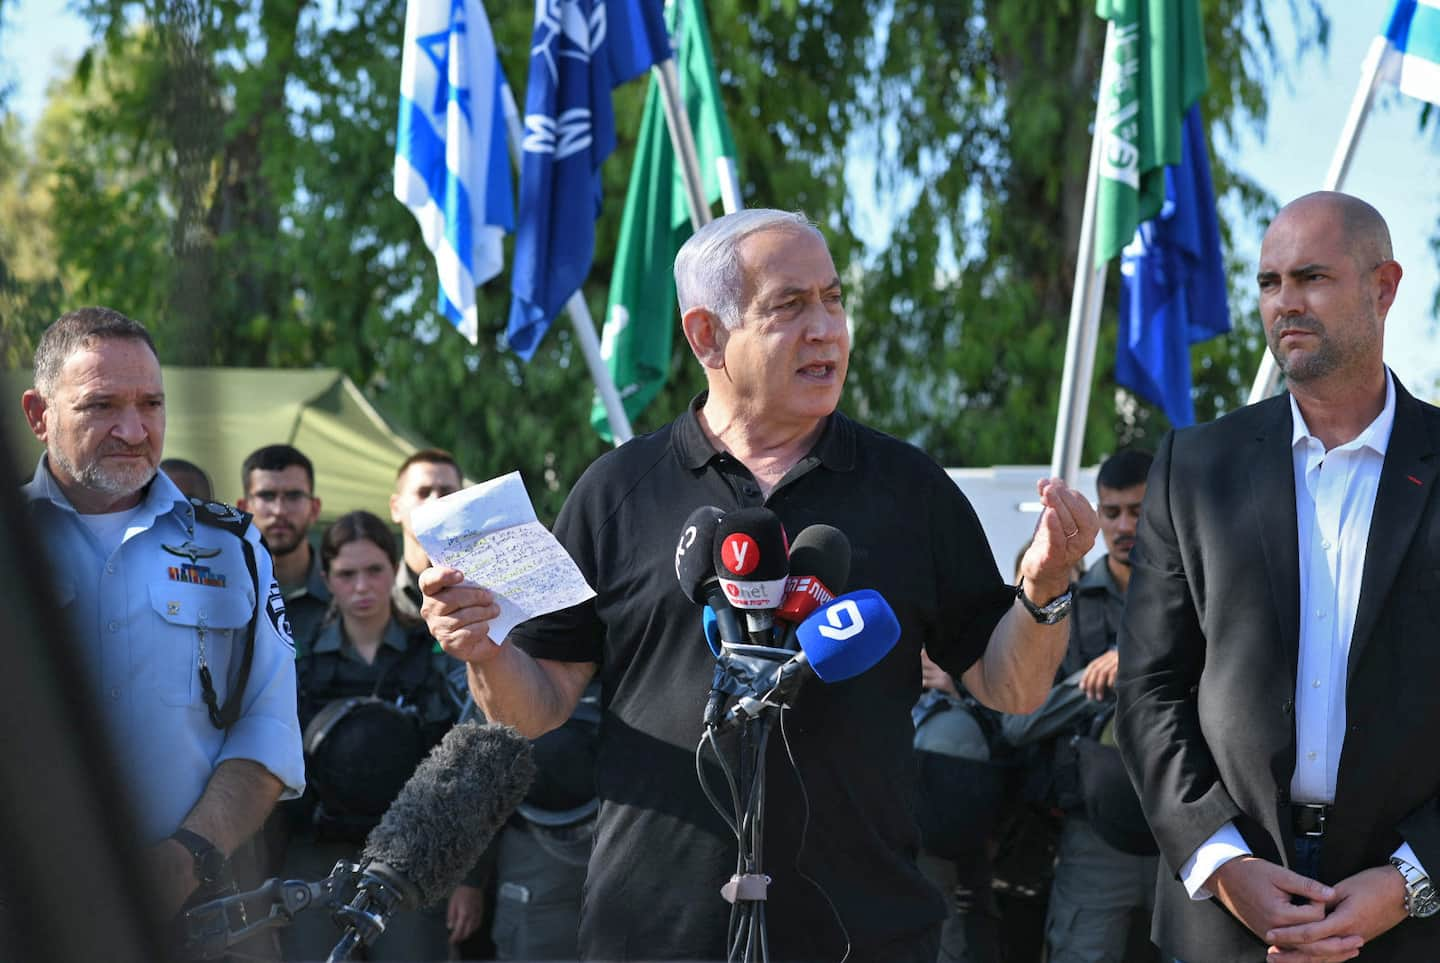 What Netanyahu and Hamas gain as countless suffer